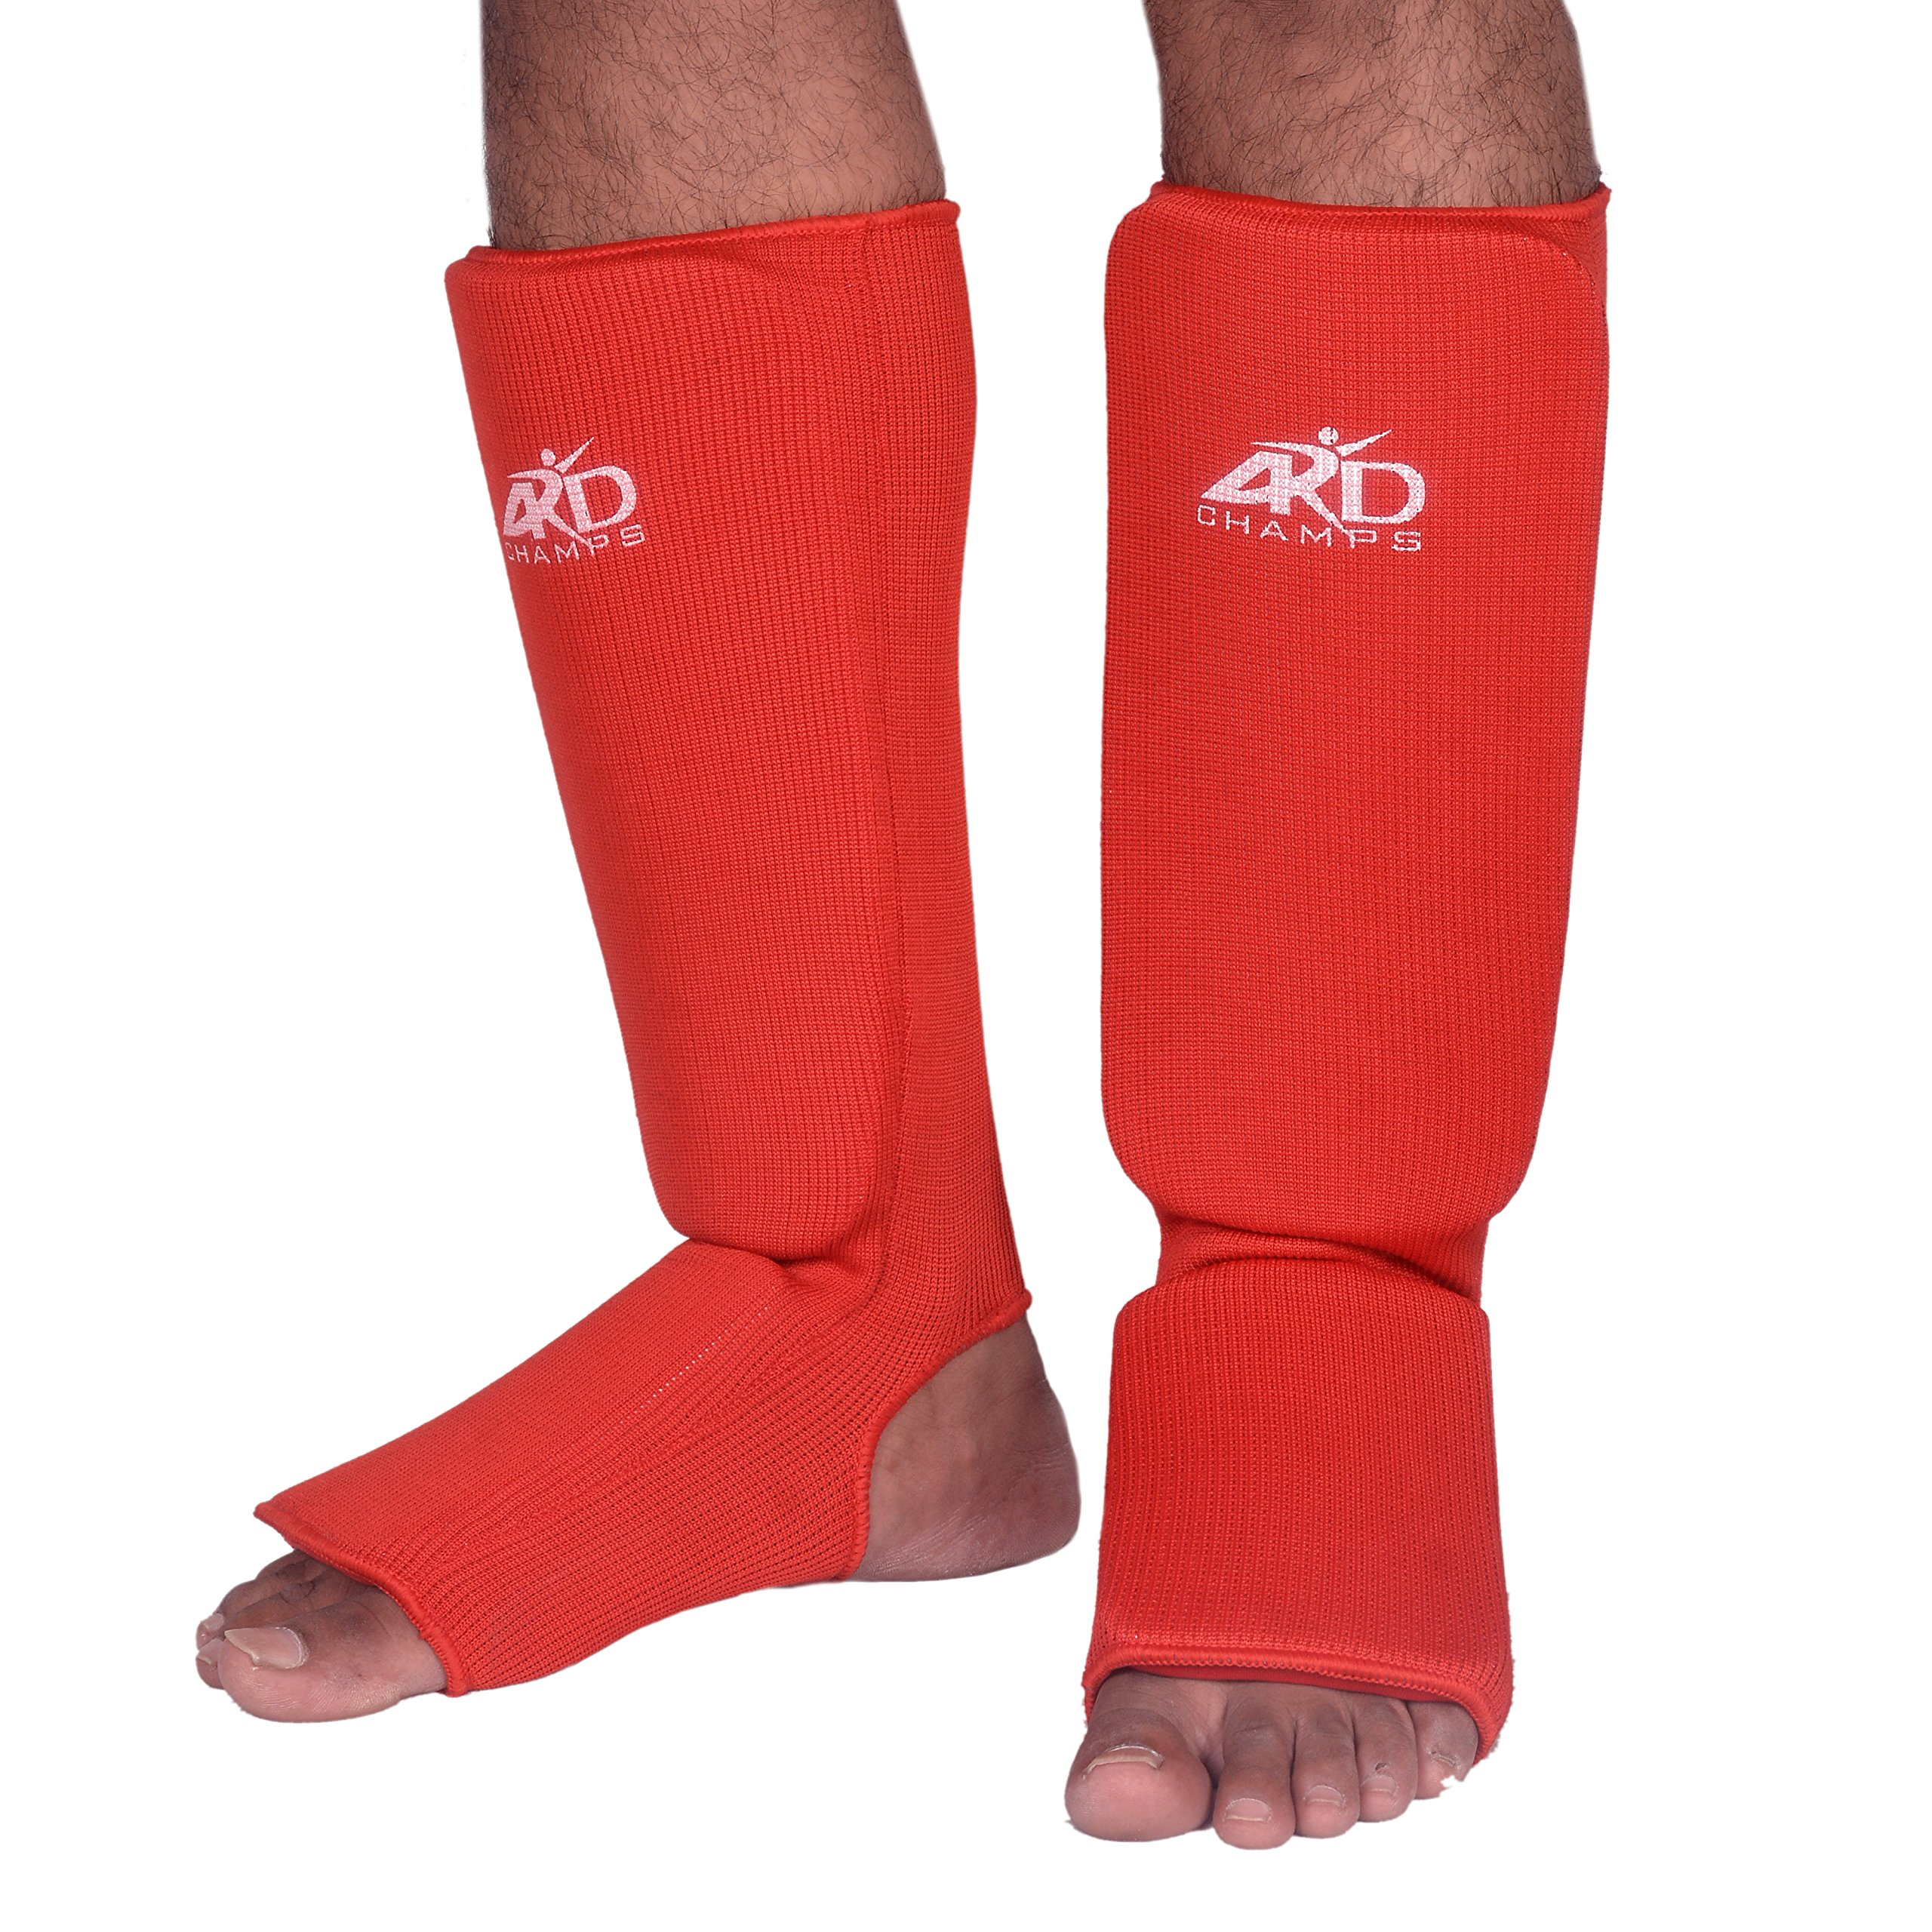 ARD Shin Instep Protectors, Guards Pads Boxing, MMA, Muay Thai (Red, Small) by ARD-Champs